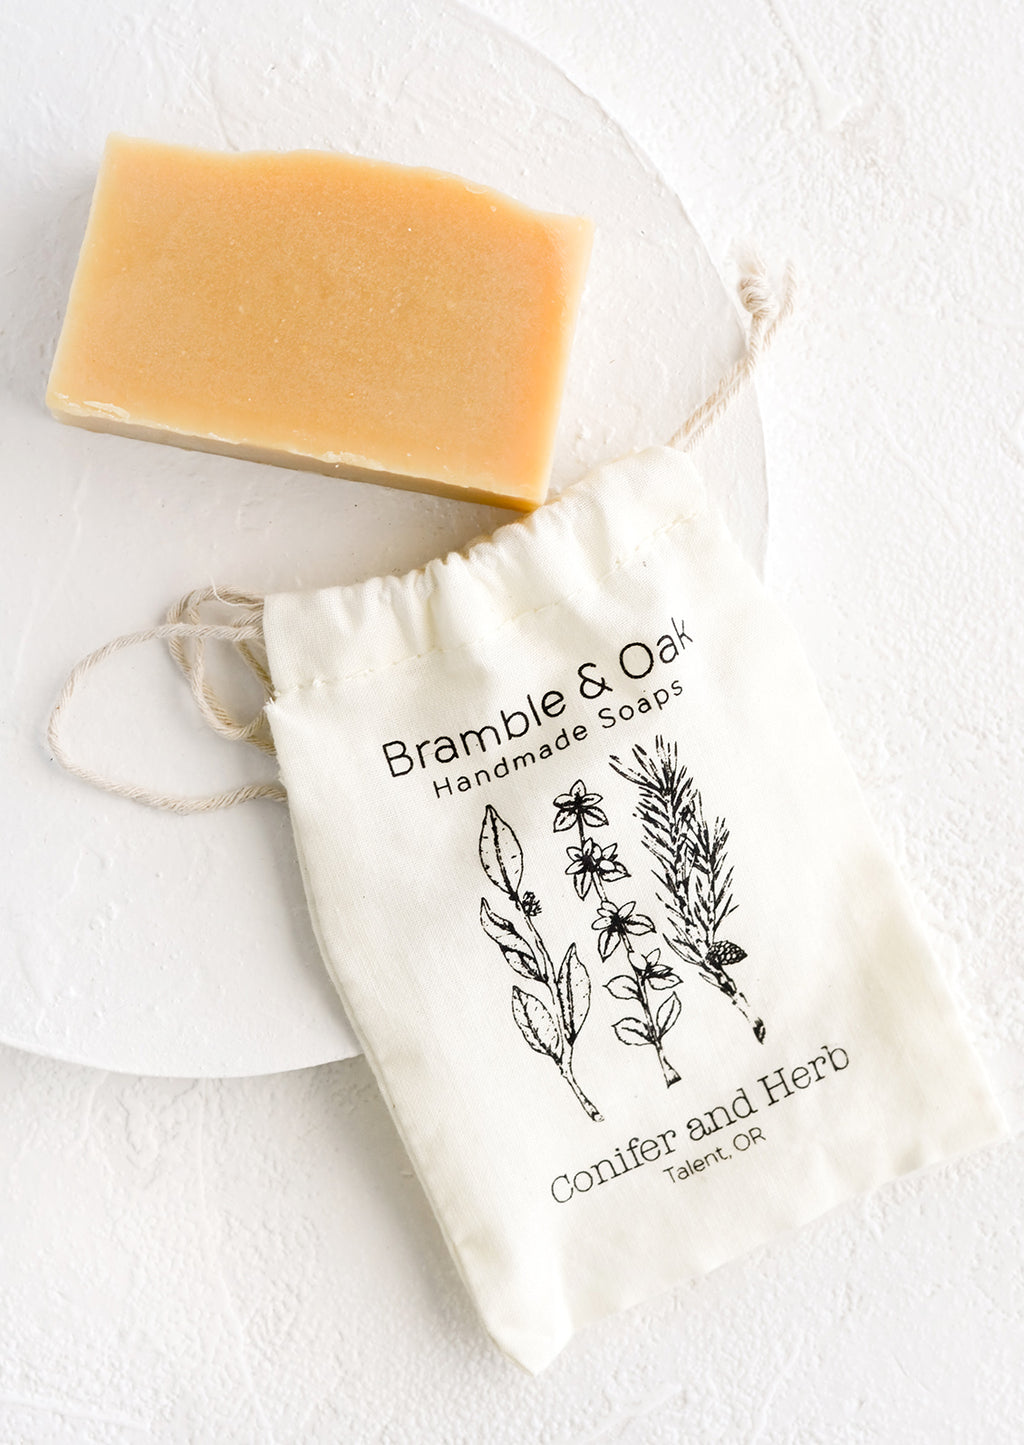 Conifer & Herb: A printed muslin bag with a bar of soap.